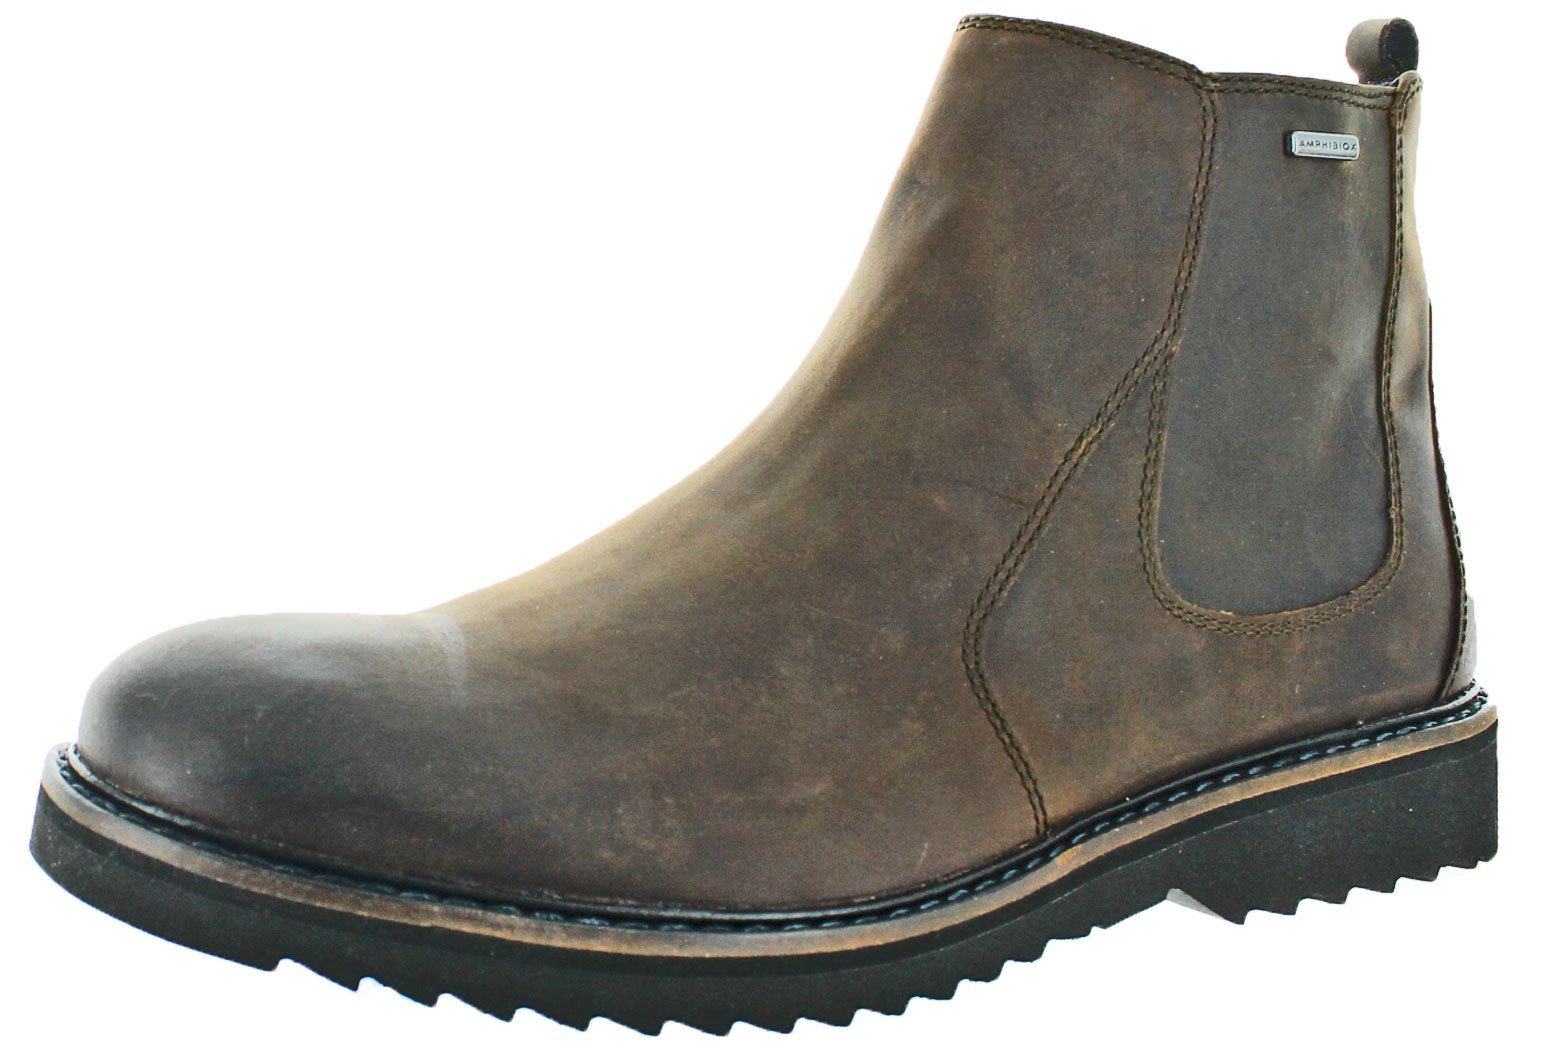 Geox Men's M Chester Abx 6 Chelsea Boot,Chestnut,46 EU/12.5 M US by Geox (Image #1)